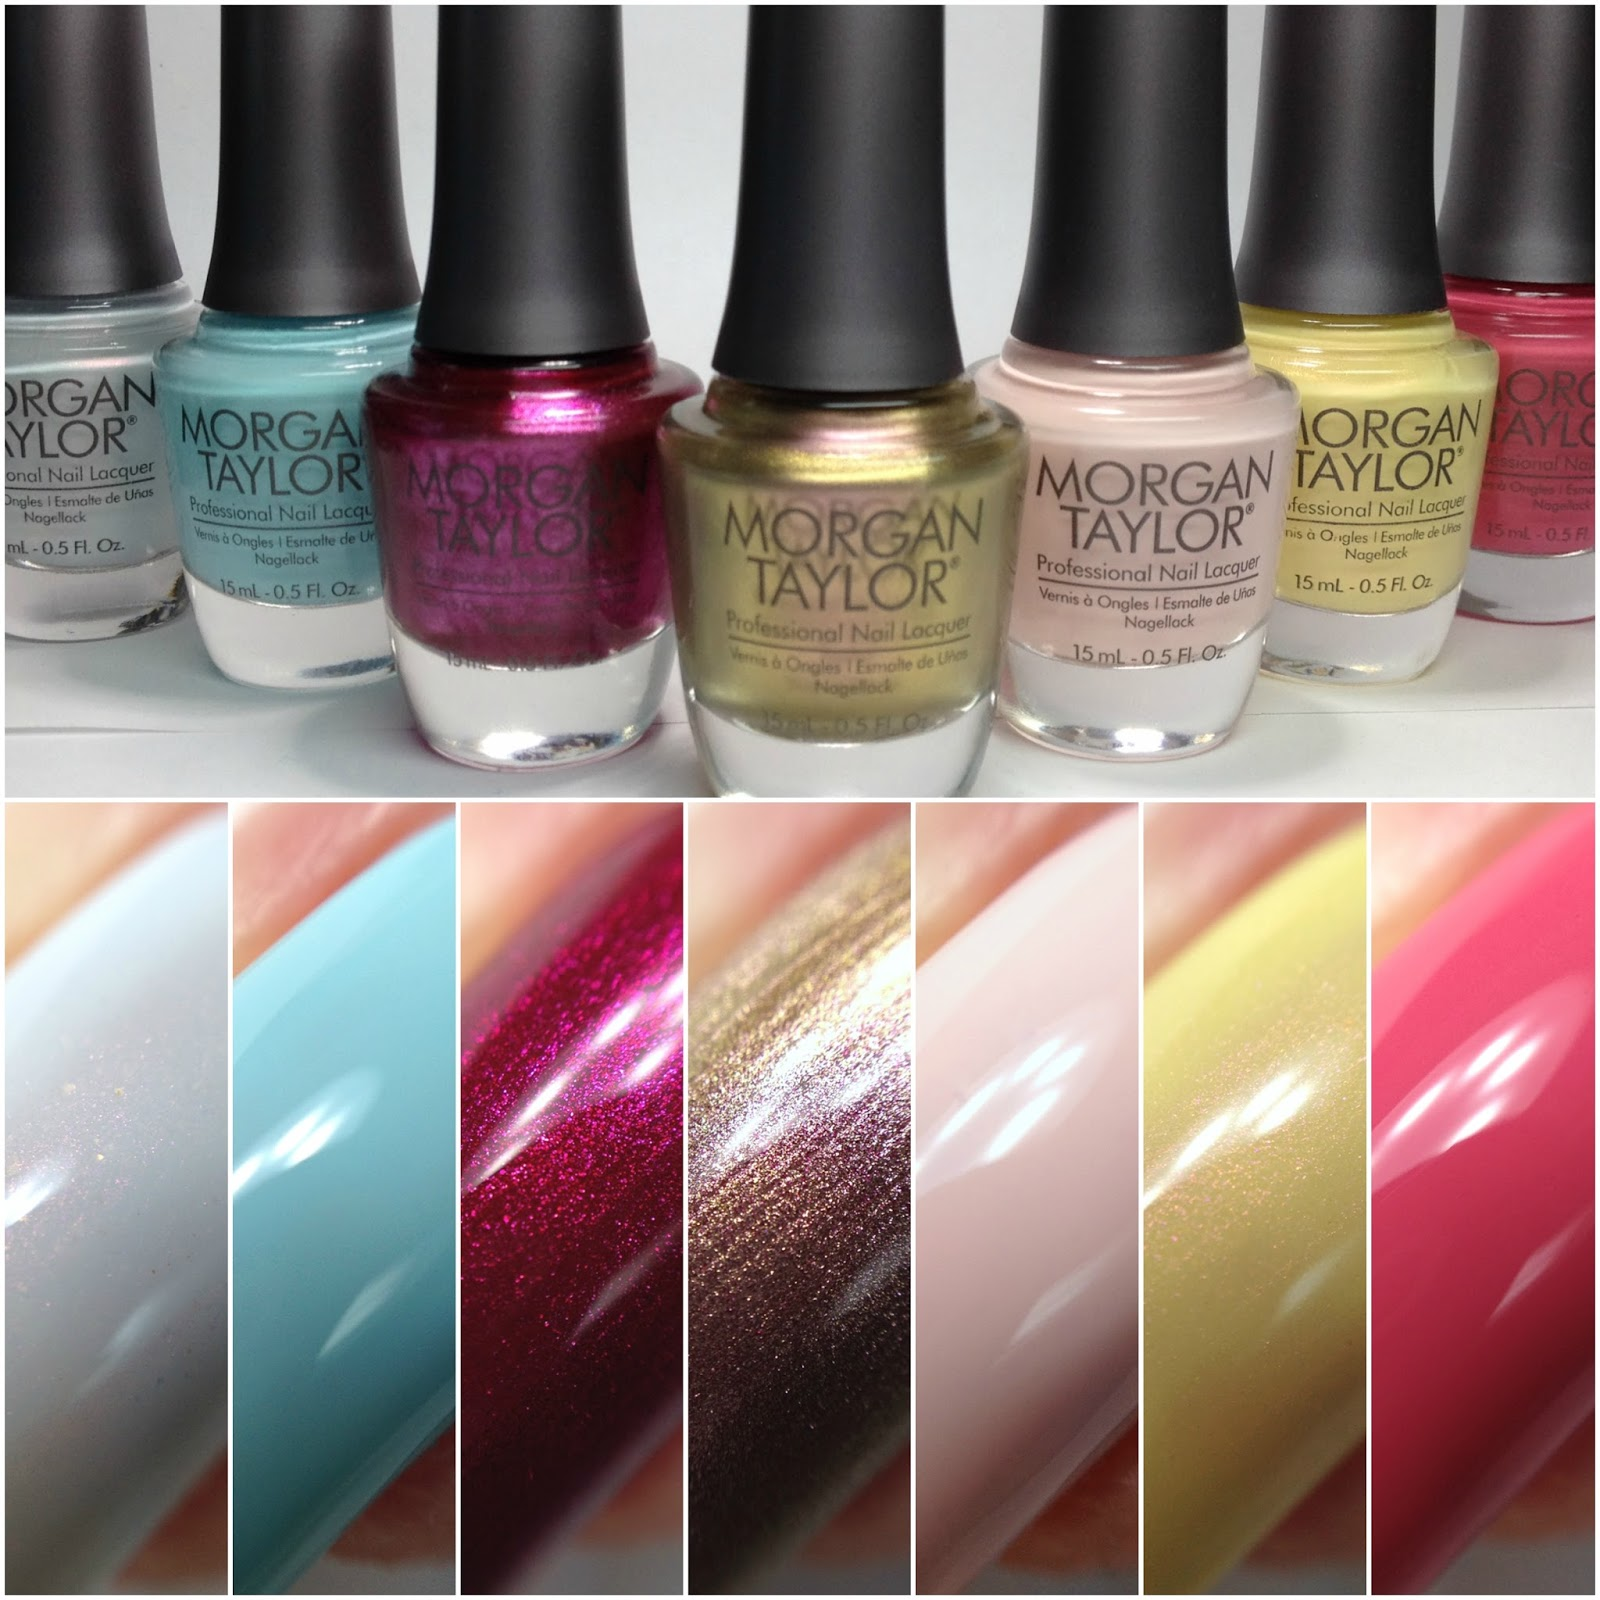 Tonight I Have The New Beauty And Beast Inspired Collection By Morgan Taylor To Share With You This Consist Of Seven Polishes In A Few